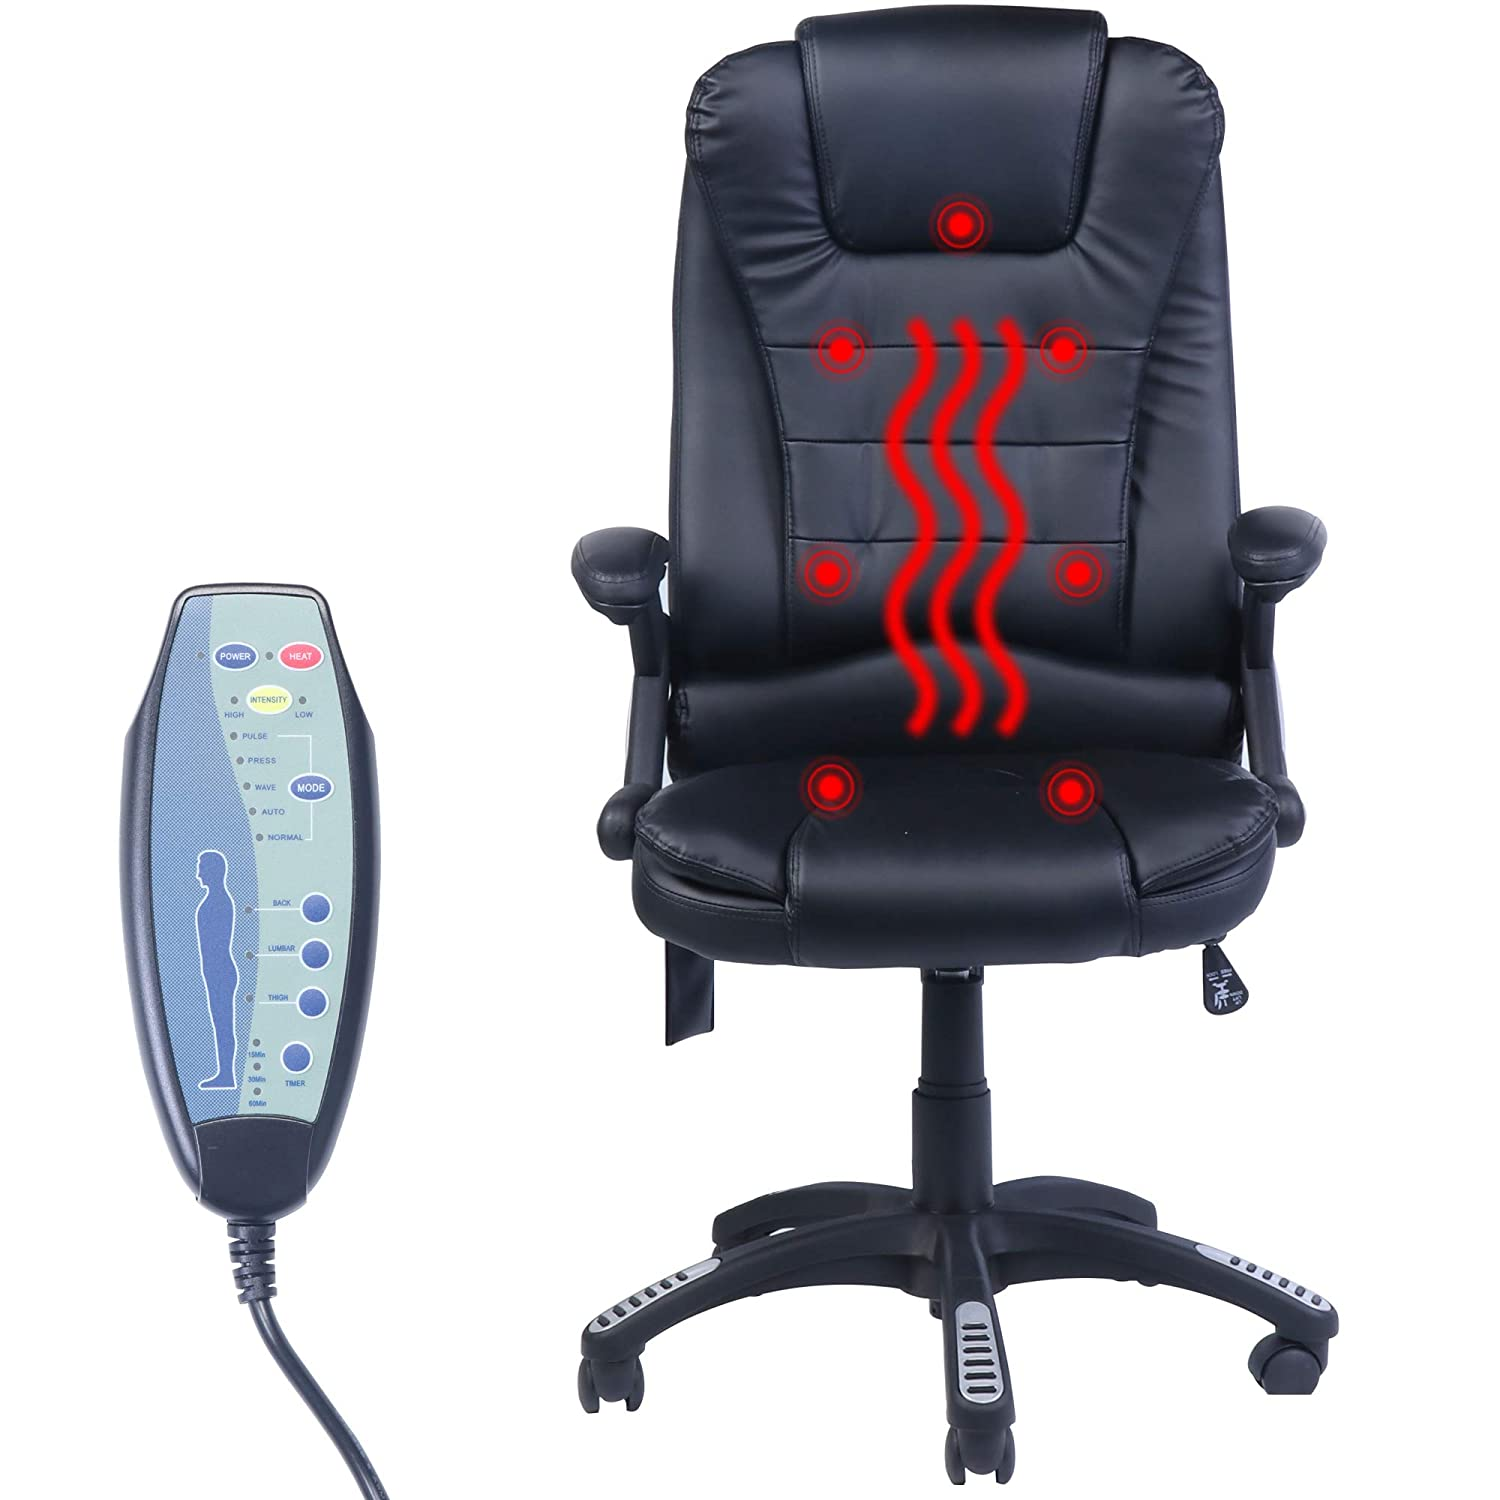 Frivity High-Back Managerial Chair Ergonomic PU Leather Heated Vibrating Massage Office Executive Chair - Black